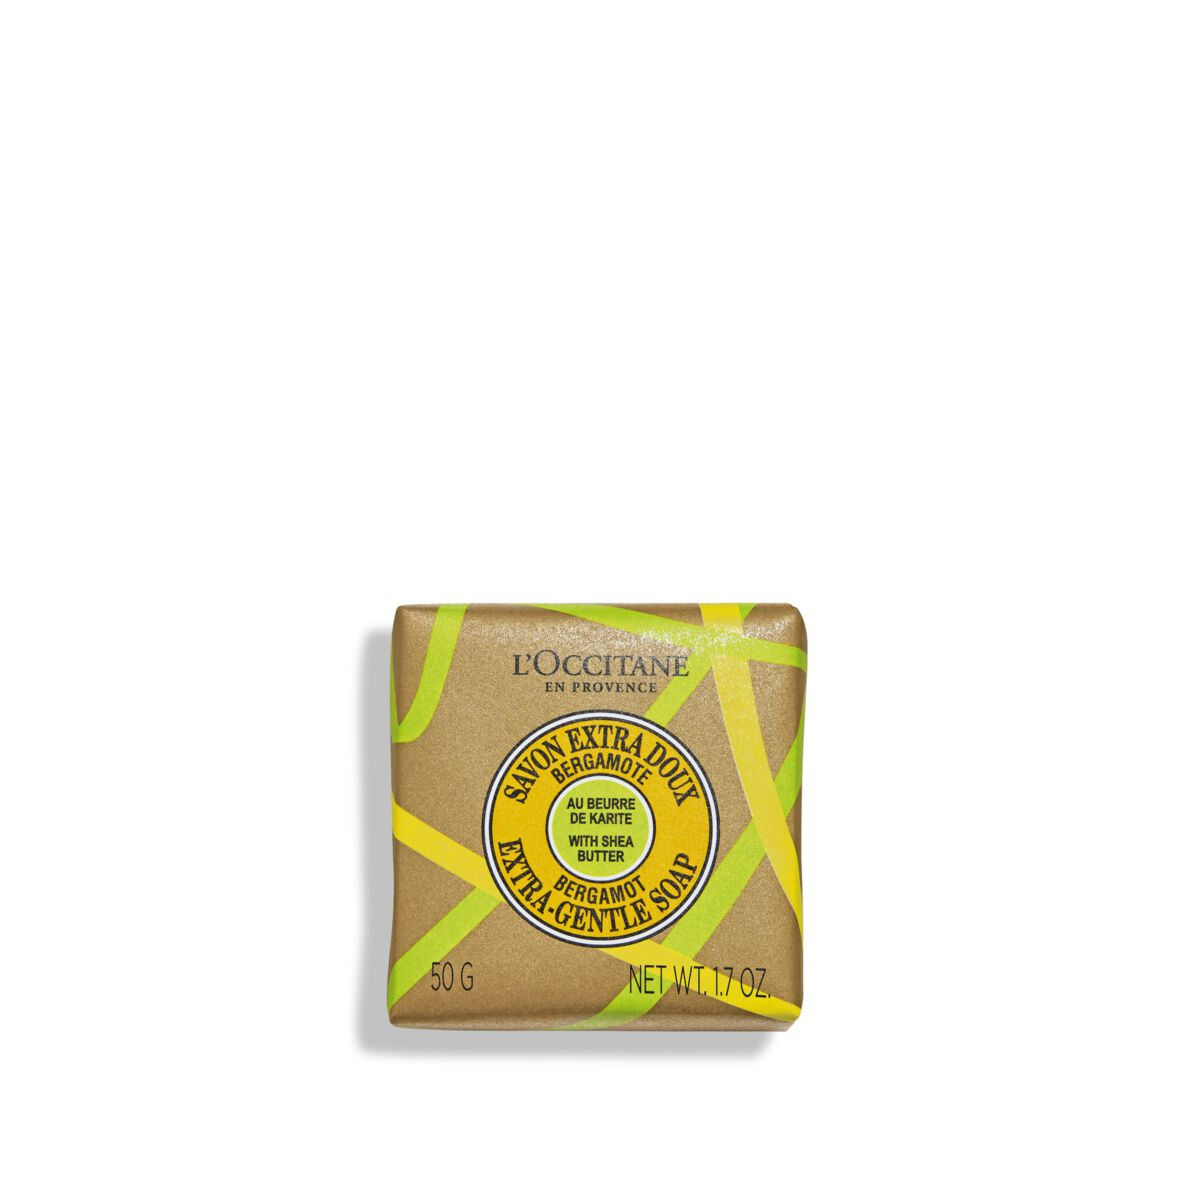 Shea Butter Bergamot Extra-Gentle Soap 1.7 oz. from L'OCCITANE